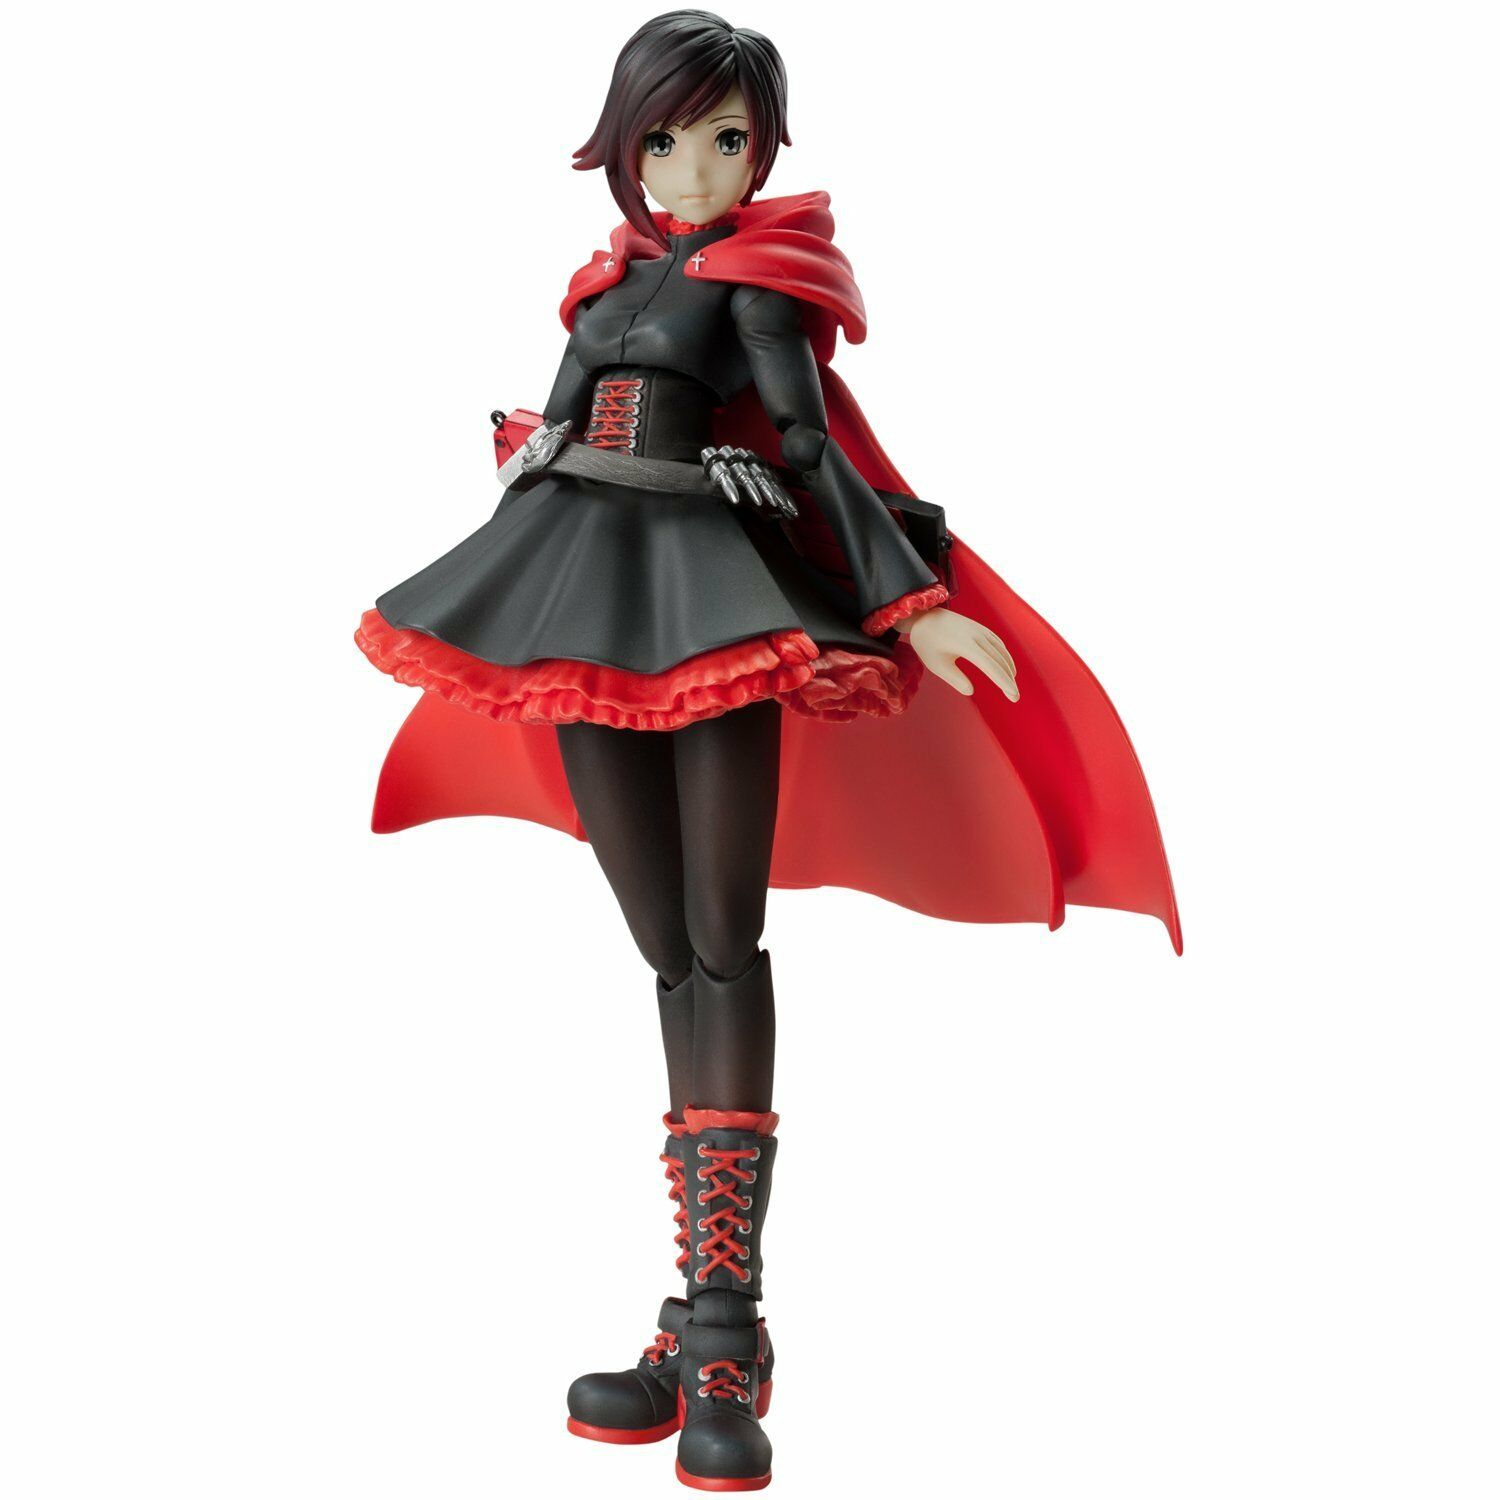 Medicos S.A.S Super Action Statue RWBY Ruby Ruby Ruby pink 130mm Action Figure fa5